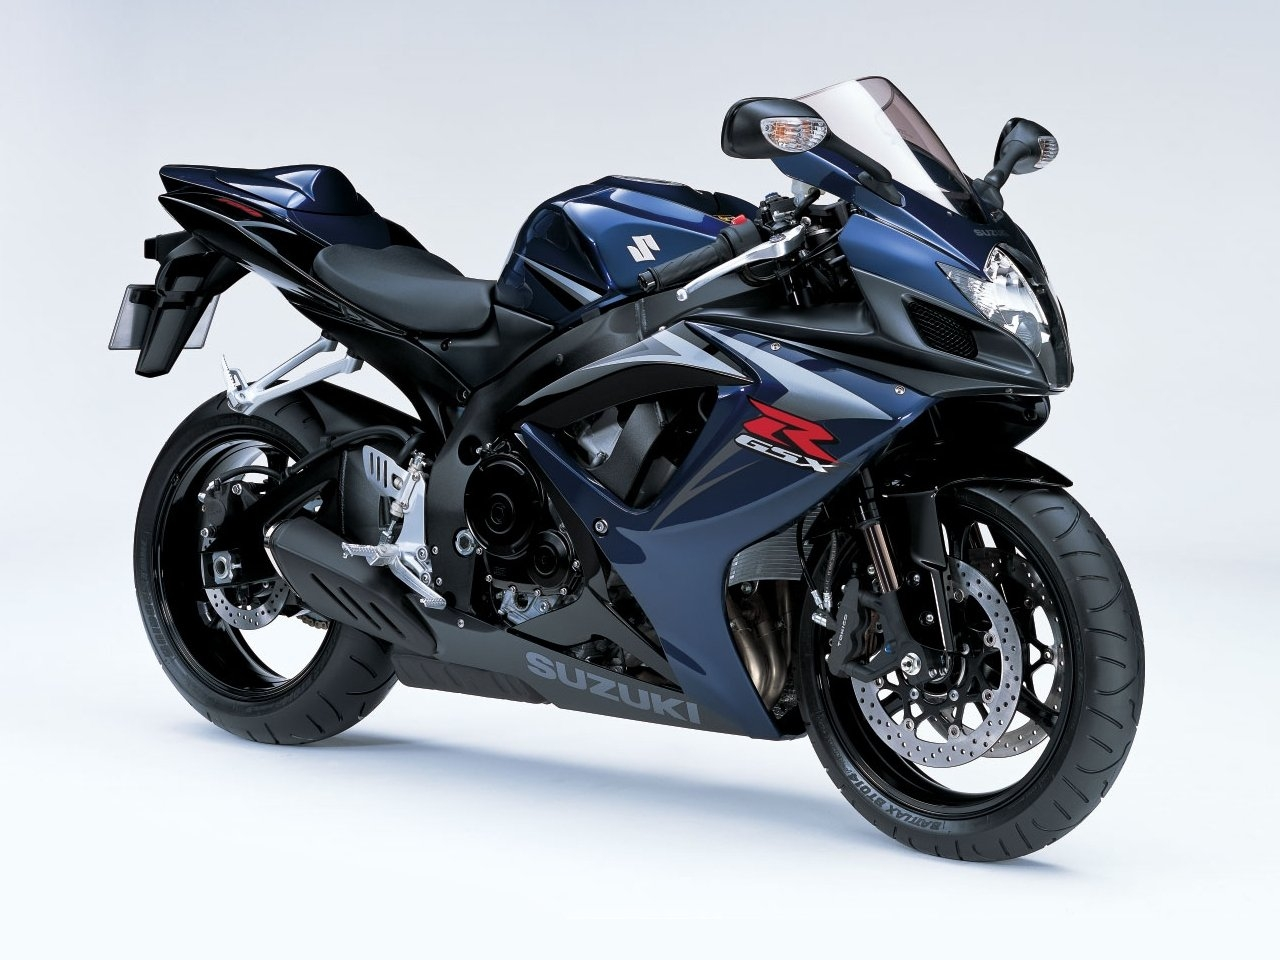 2013 suzuki gsx r 750 moto zombdrive com. Black Bedroom Furniture Sets. Home Design Ideas